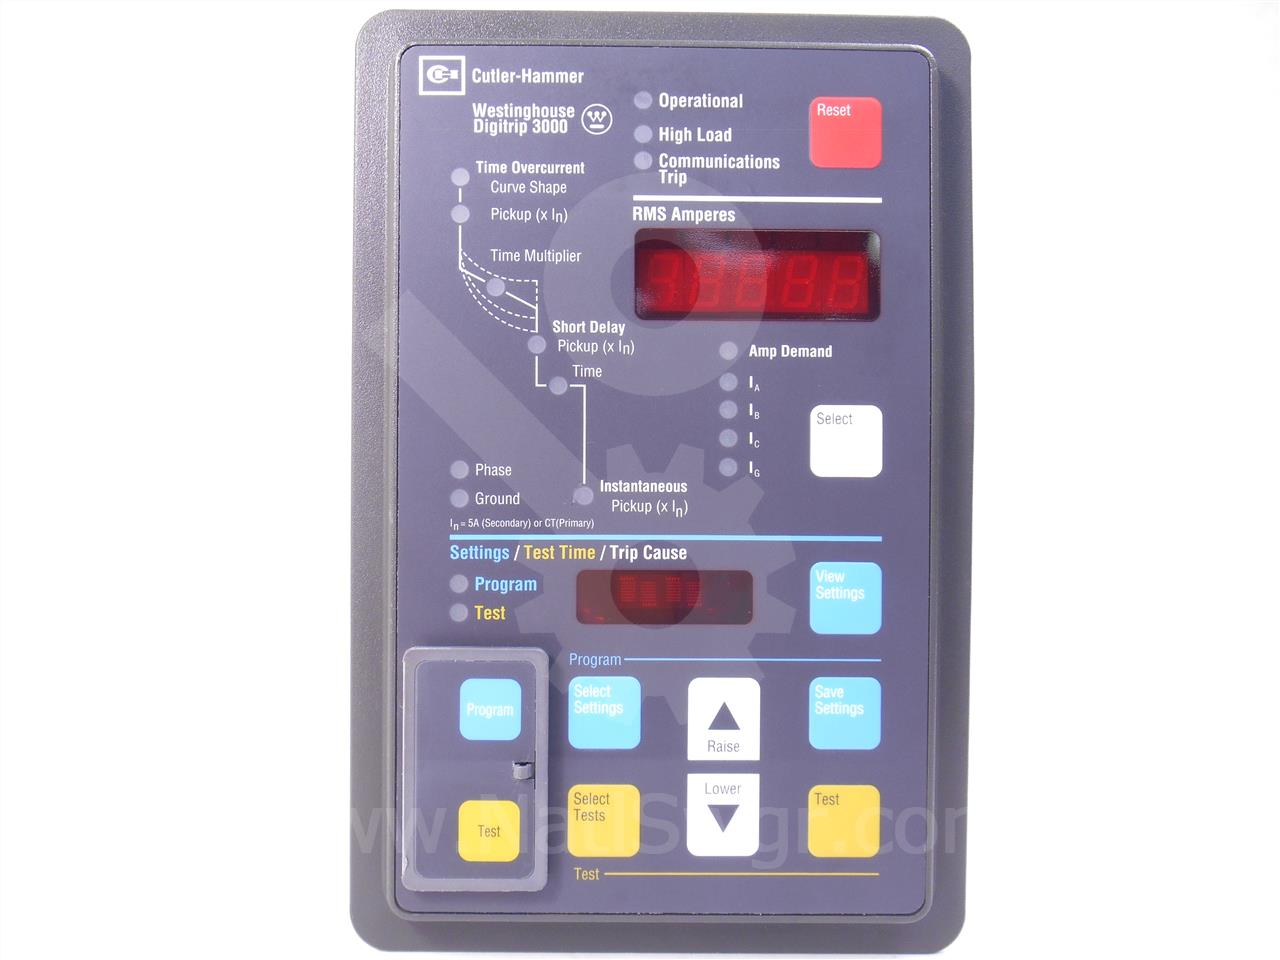 Wh Digitrip 3000 Solid State Relay Basic Of